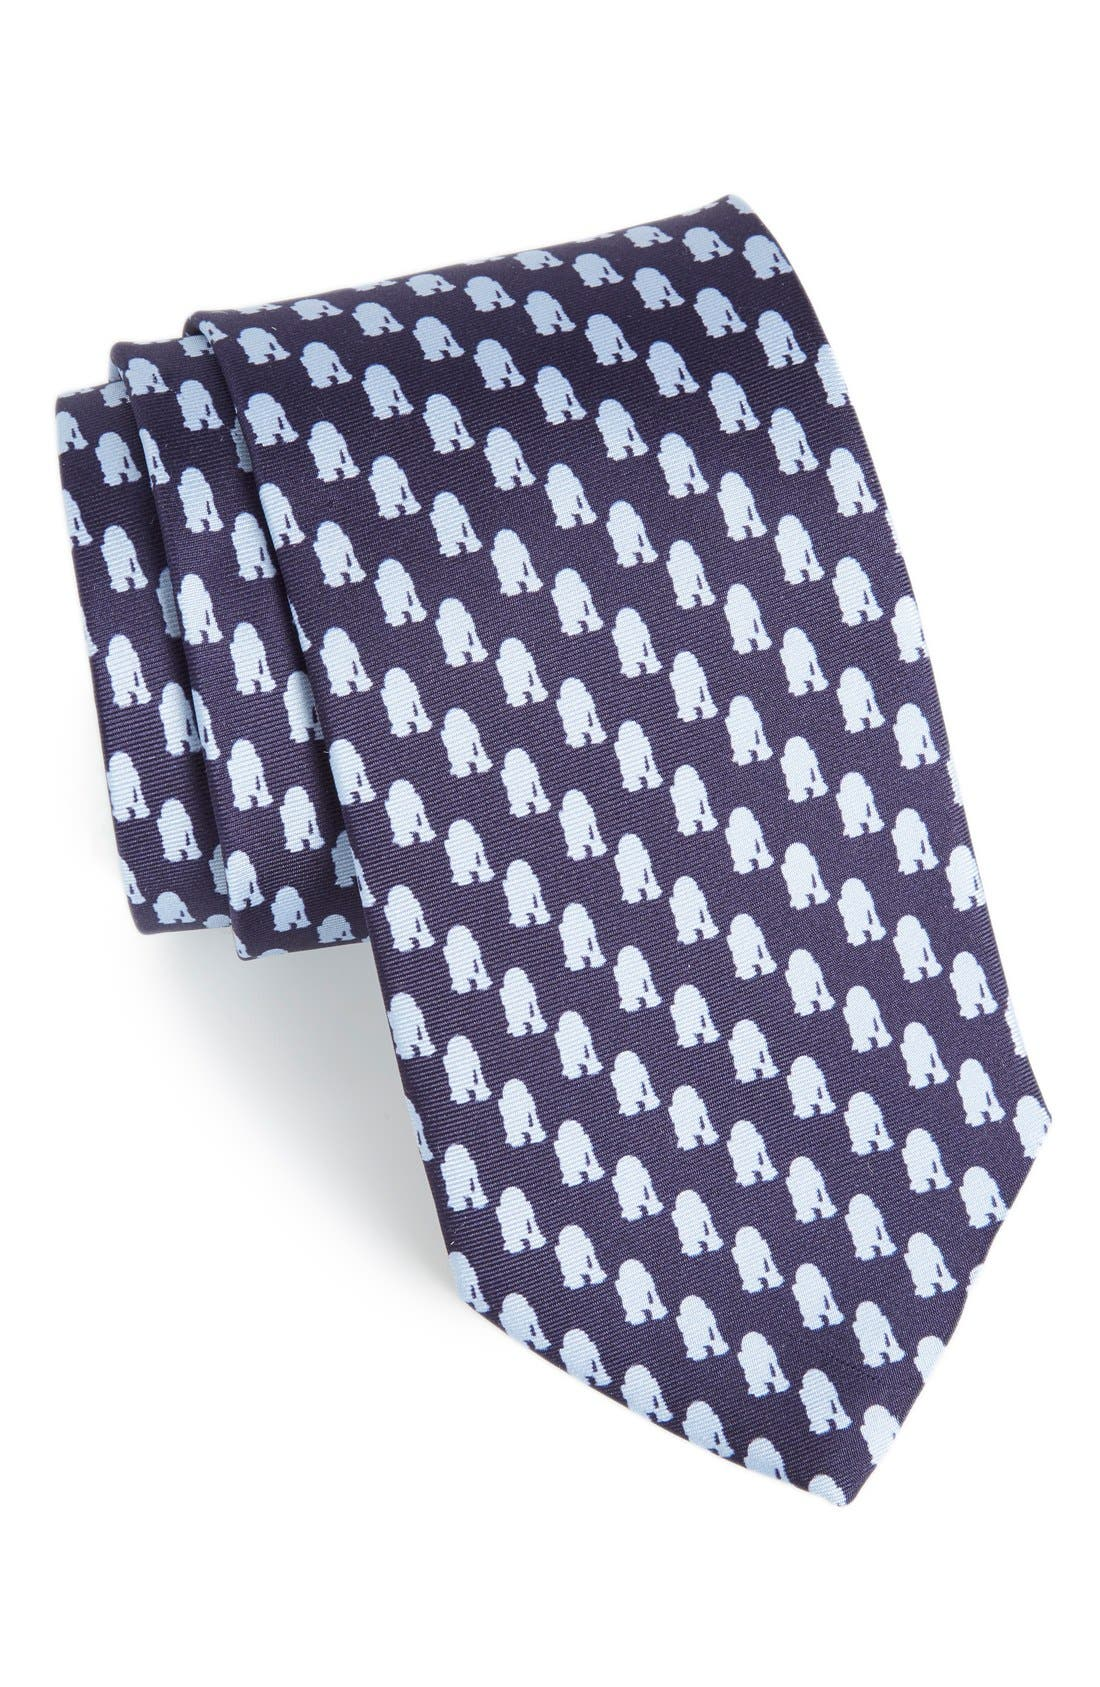 CUFFLINKS, INC. 'Star Wars™ - R2-D2' Silk Tie